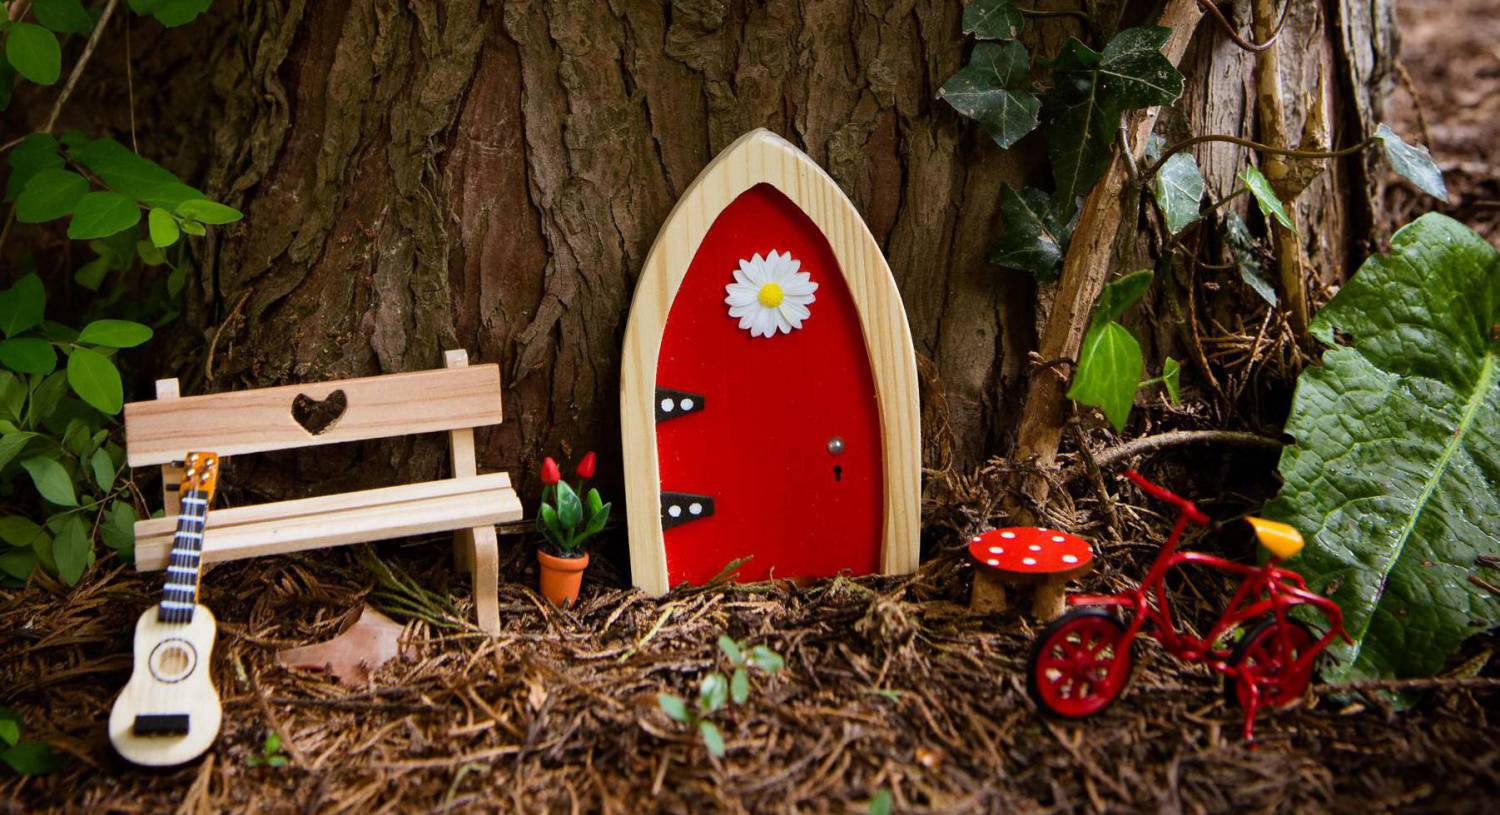 First rule of fairy gardens? There are no rules